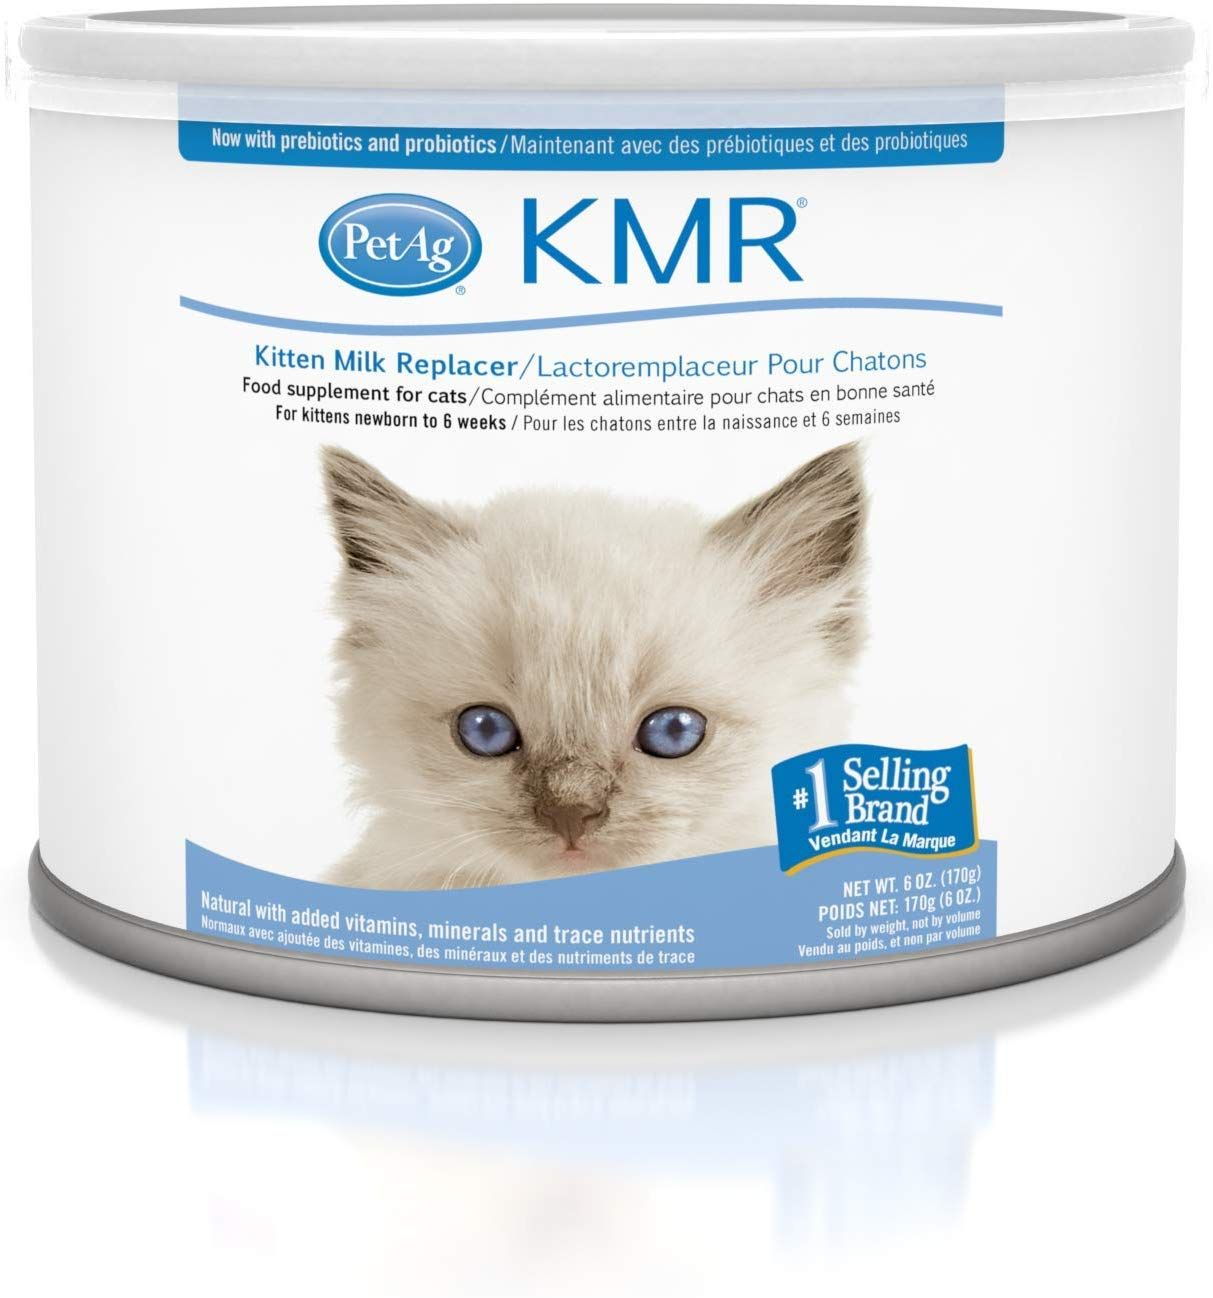 Kmr Milk Replacer For Kittens You Can Get More Details By Clicking On The Image This Is An Affiliate Link In 2020 Cat Food Kittens Milk